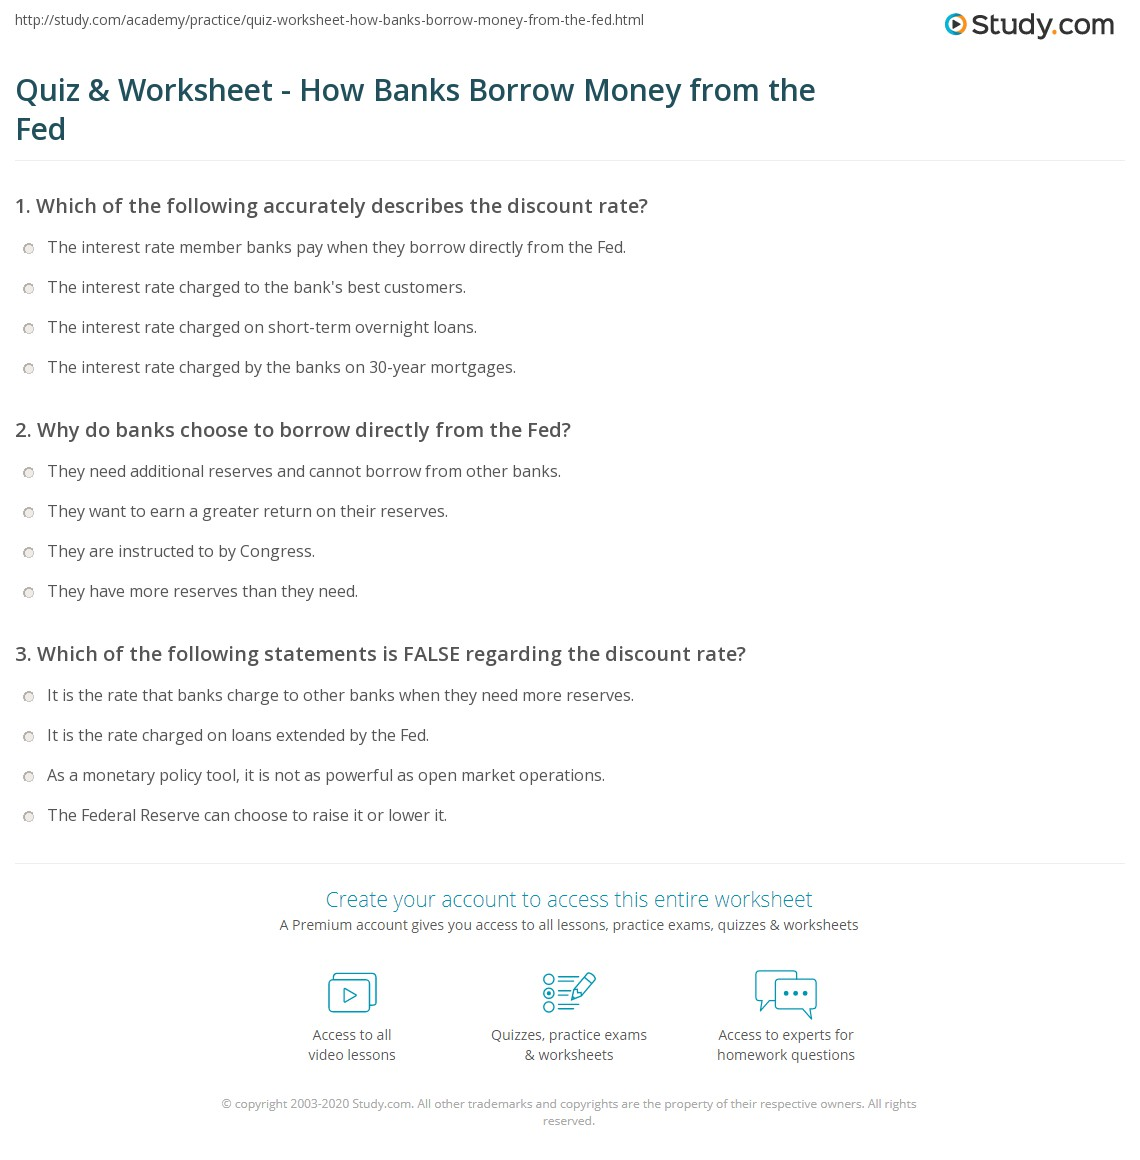 quiz worksheet how banks borrow money from the fed. Black Bedroom Furniture Sets. Home Design Ideas